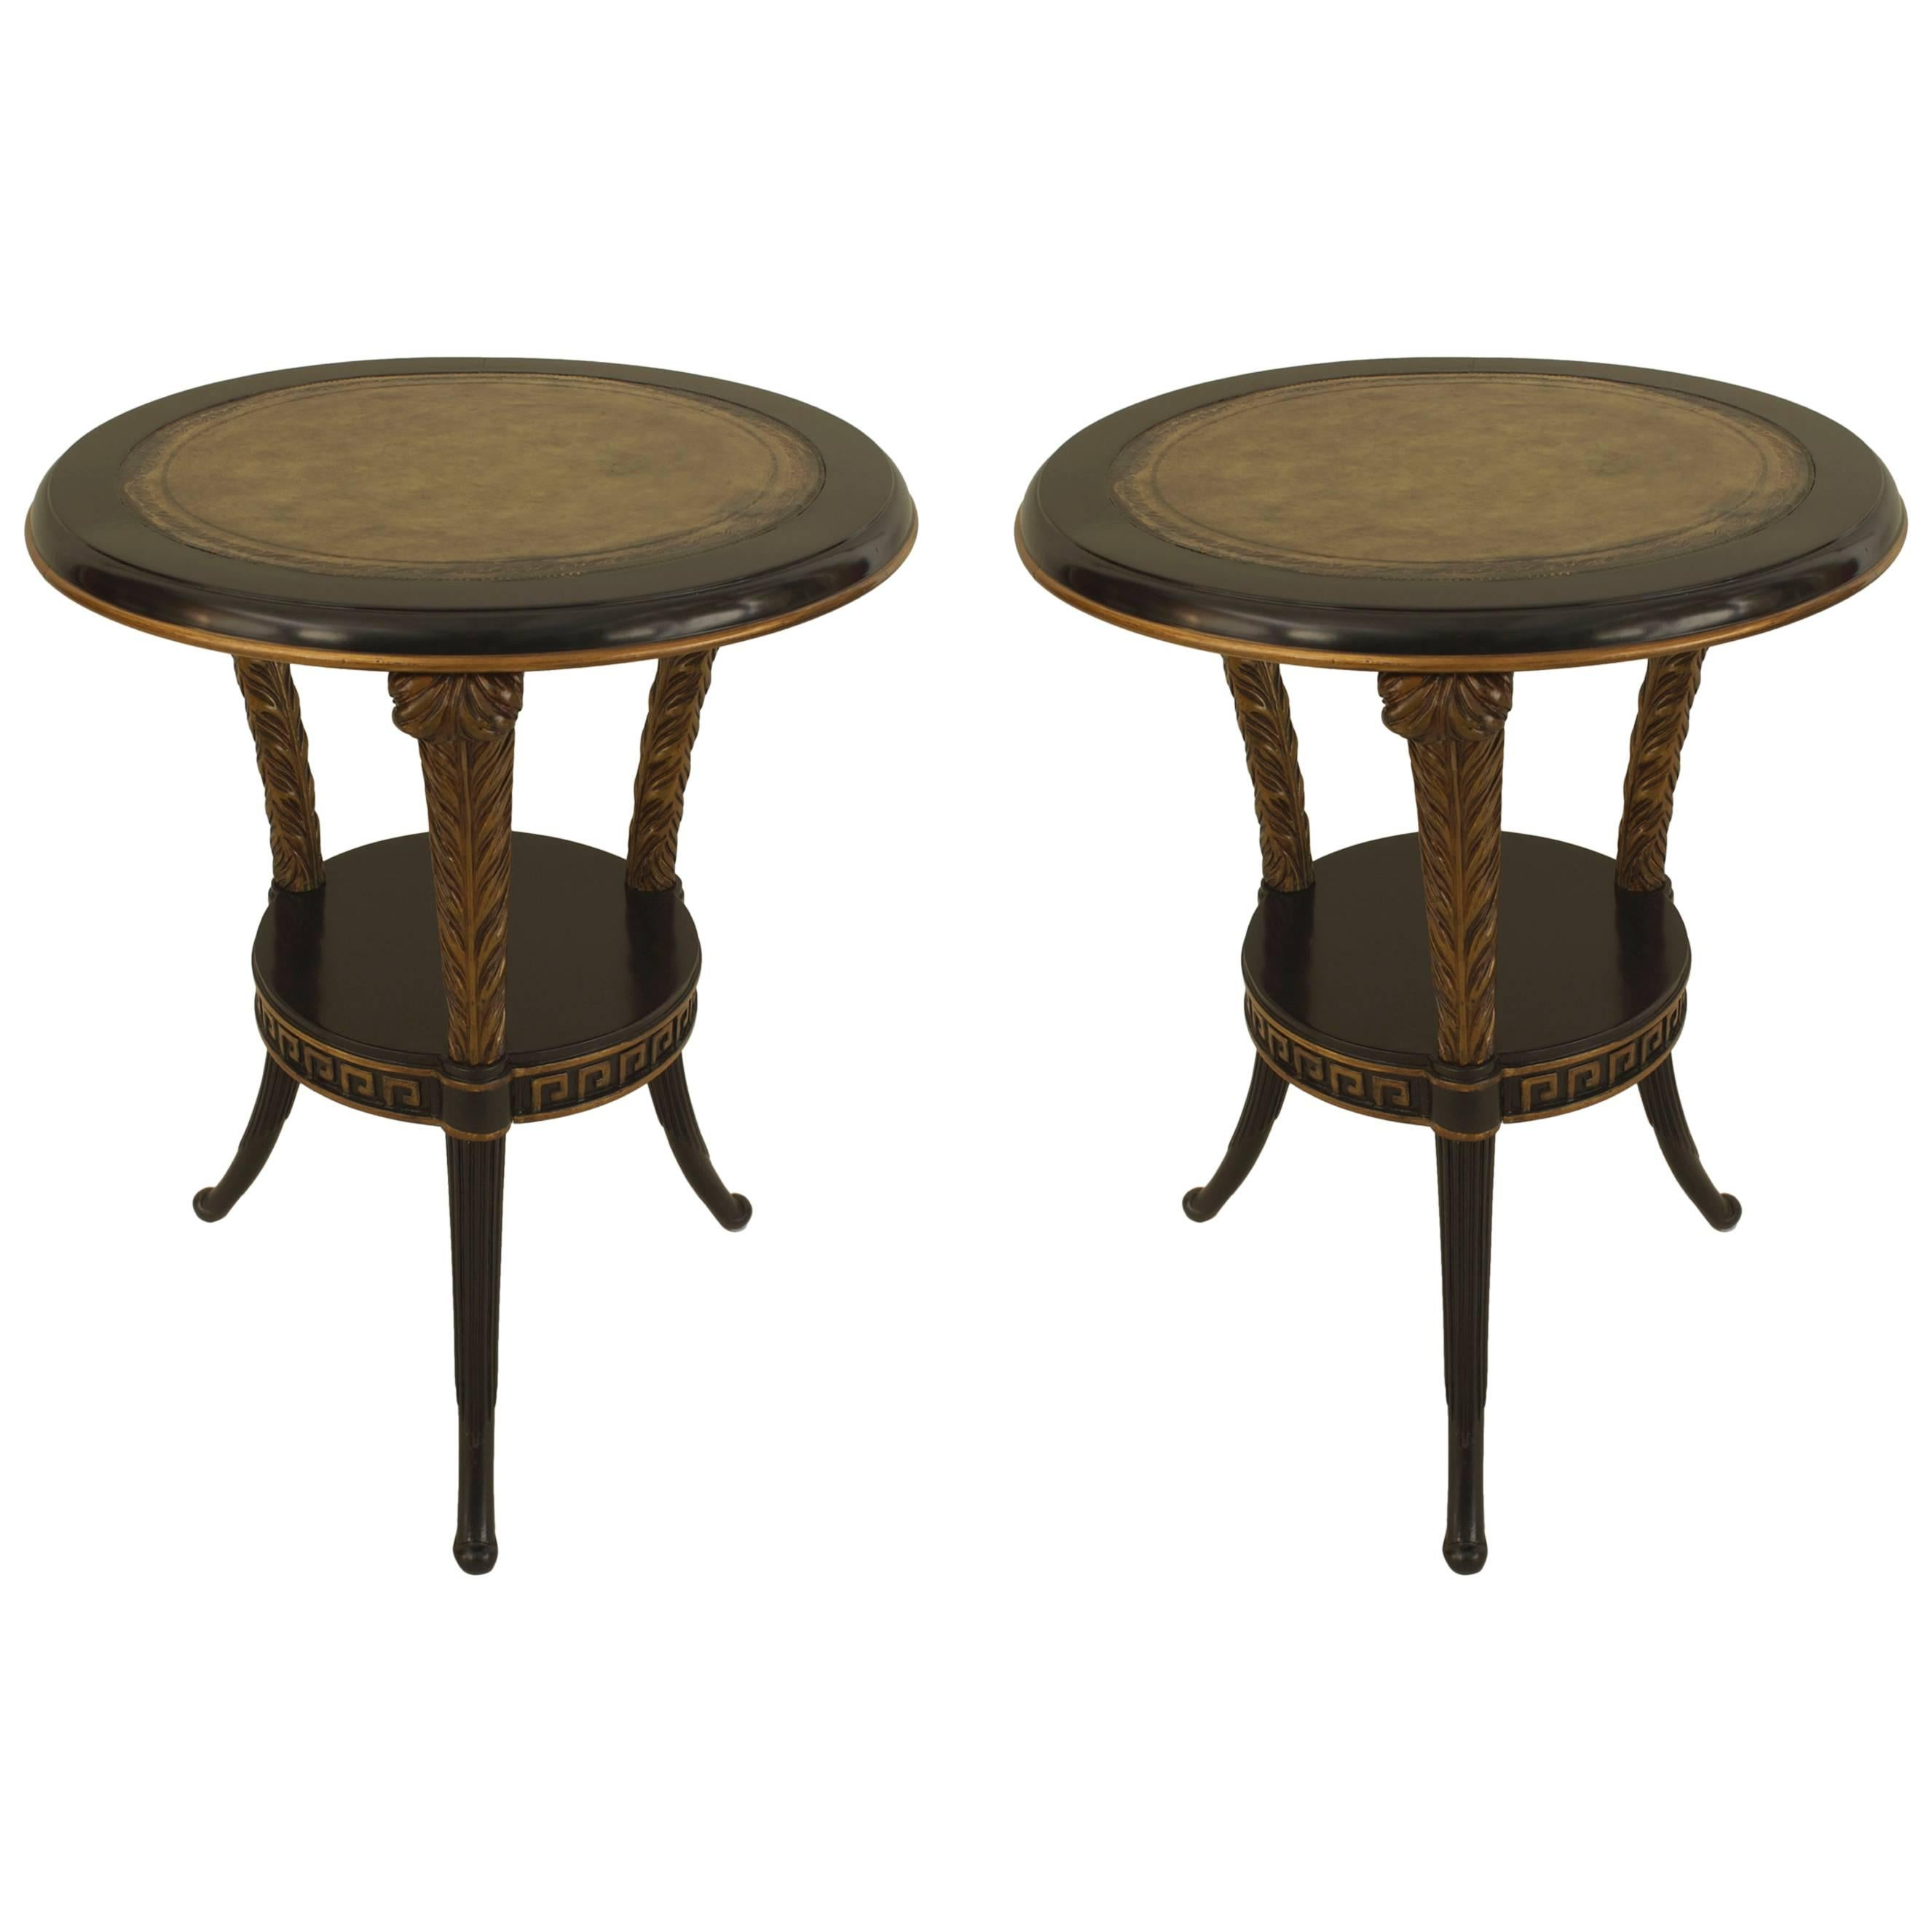 Pair of 1940s French Regency Style End Tables, By Jansen